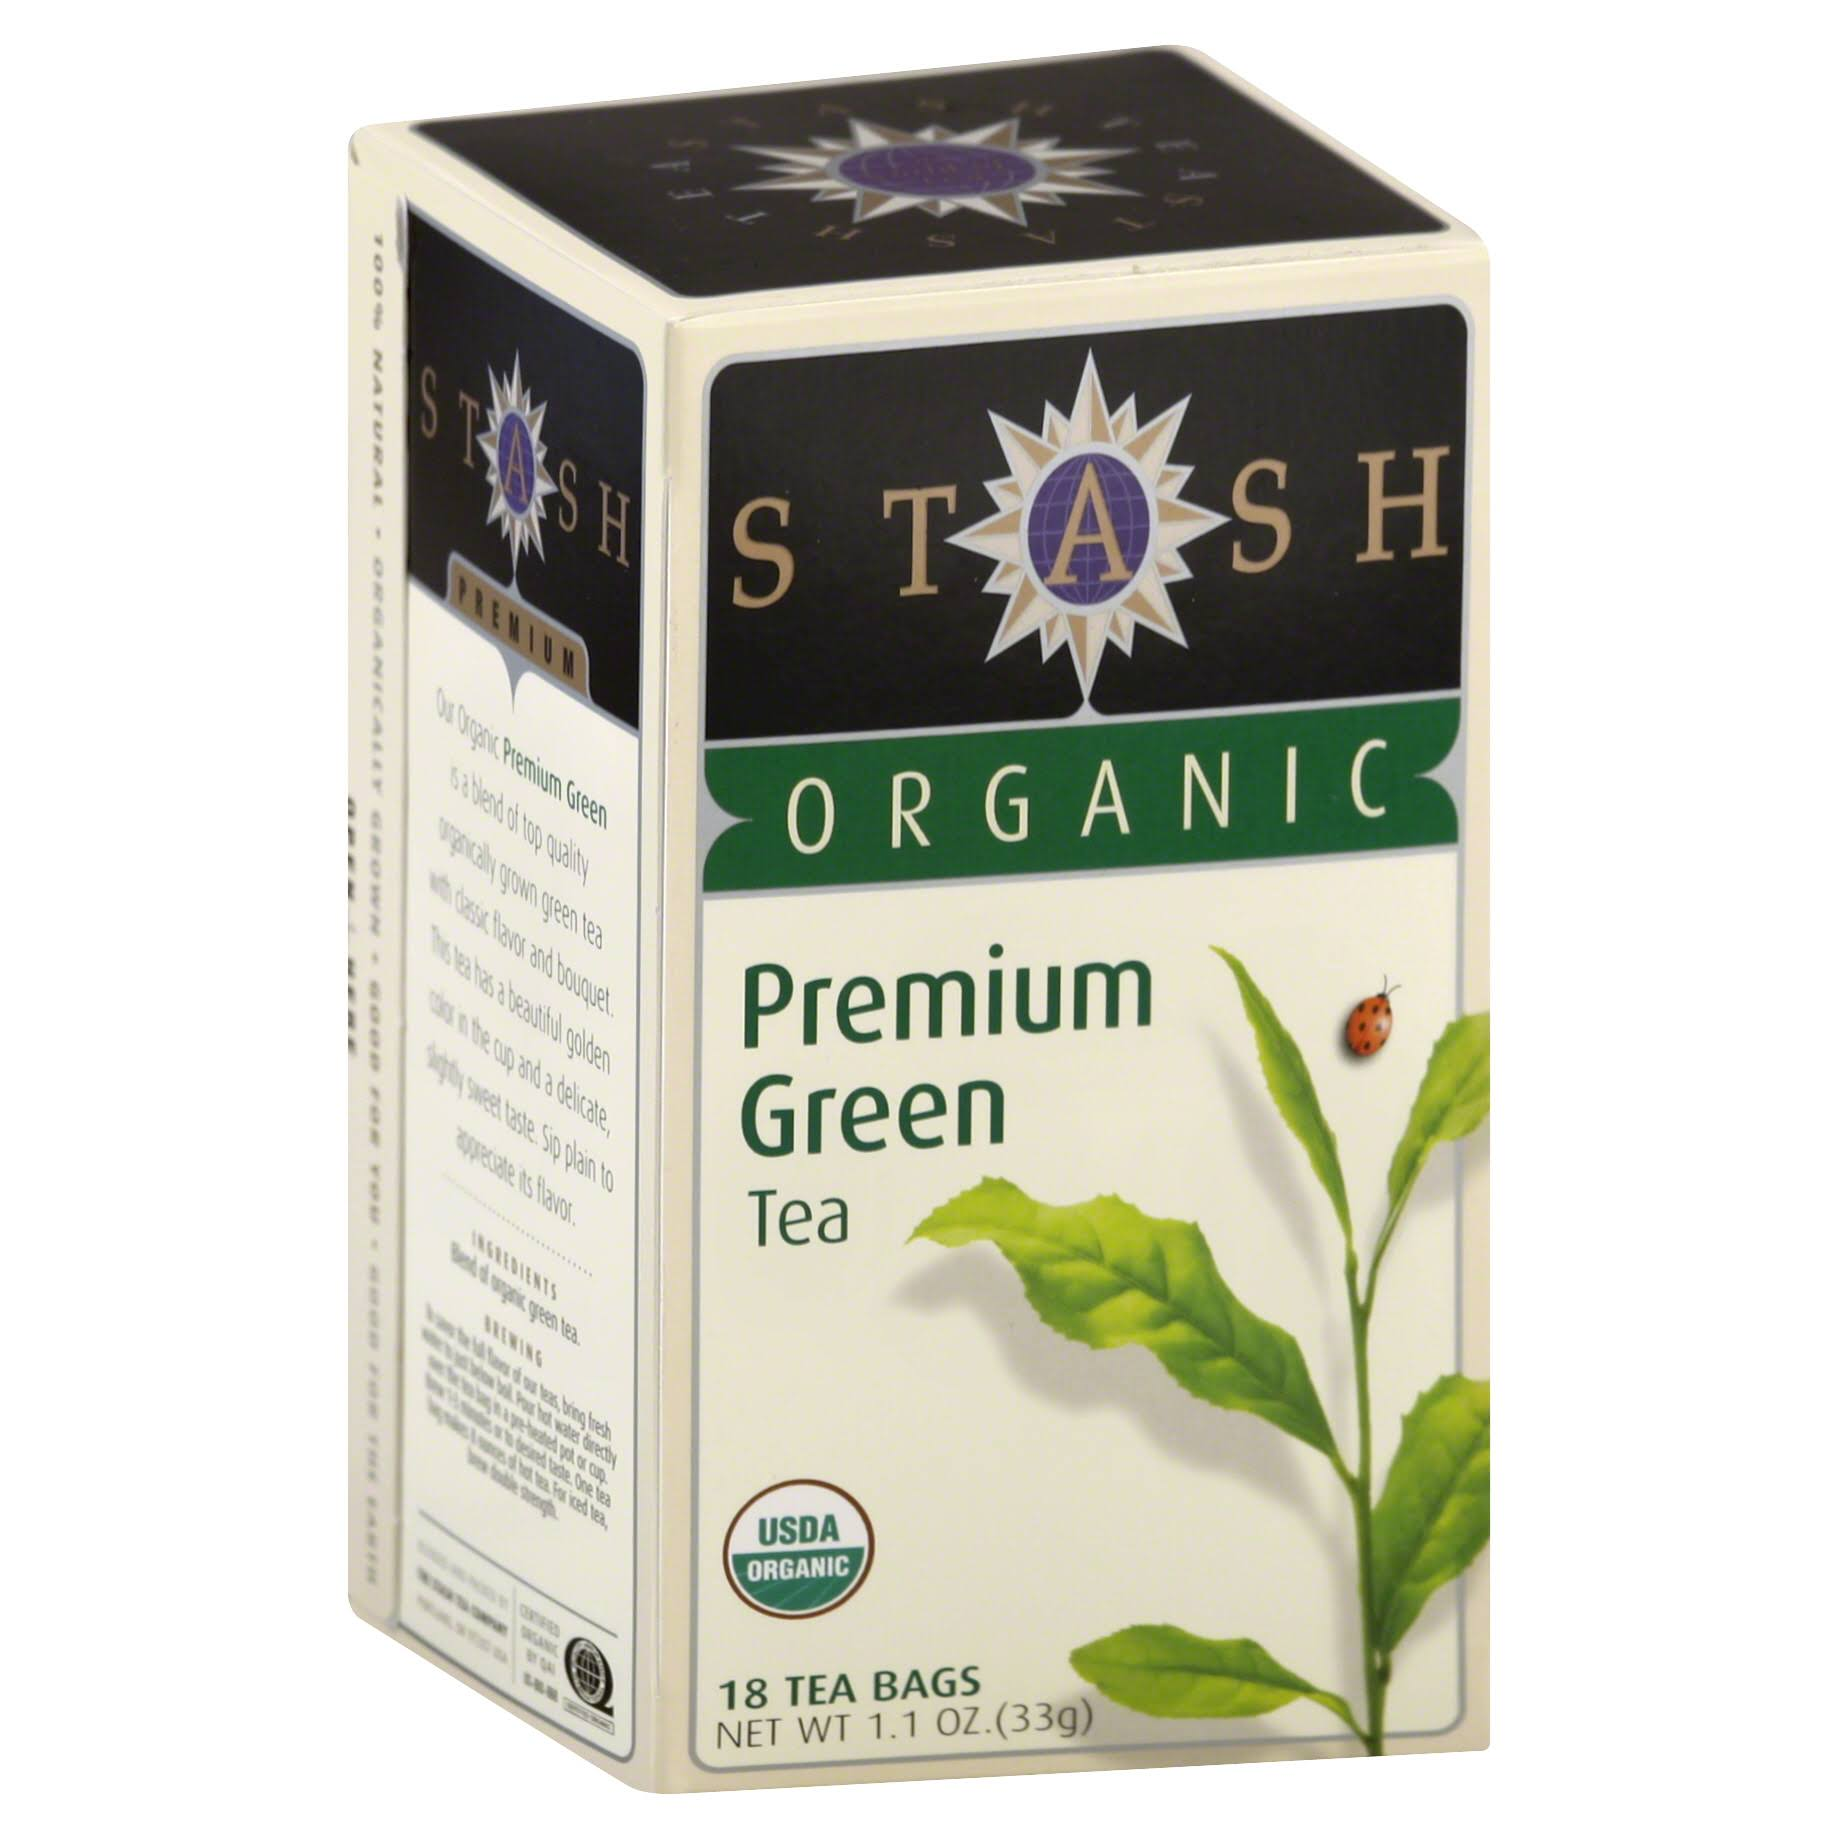 Stash Organic Premium Green Tea - 18 bags, 1.1 oz box